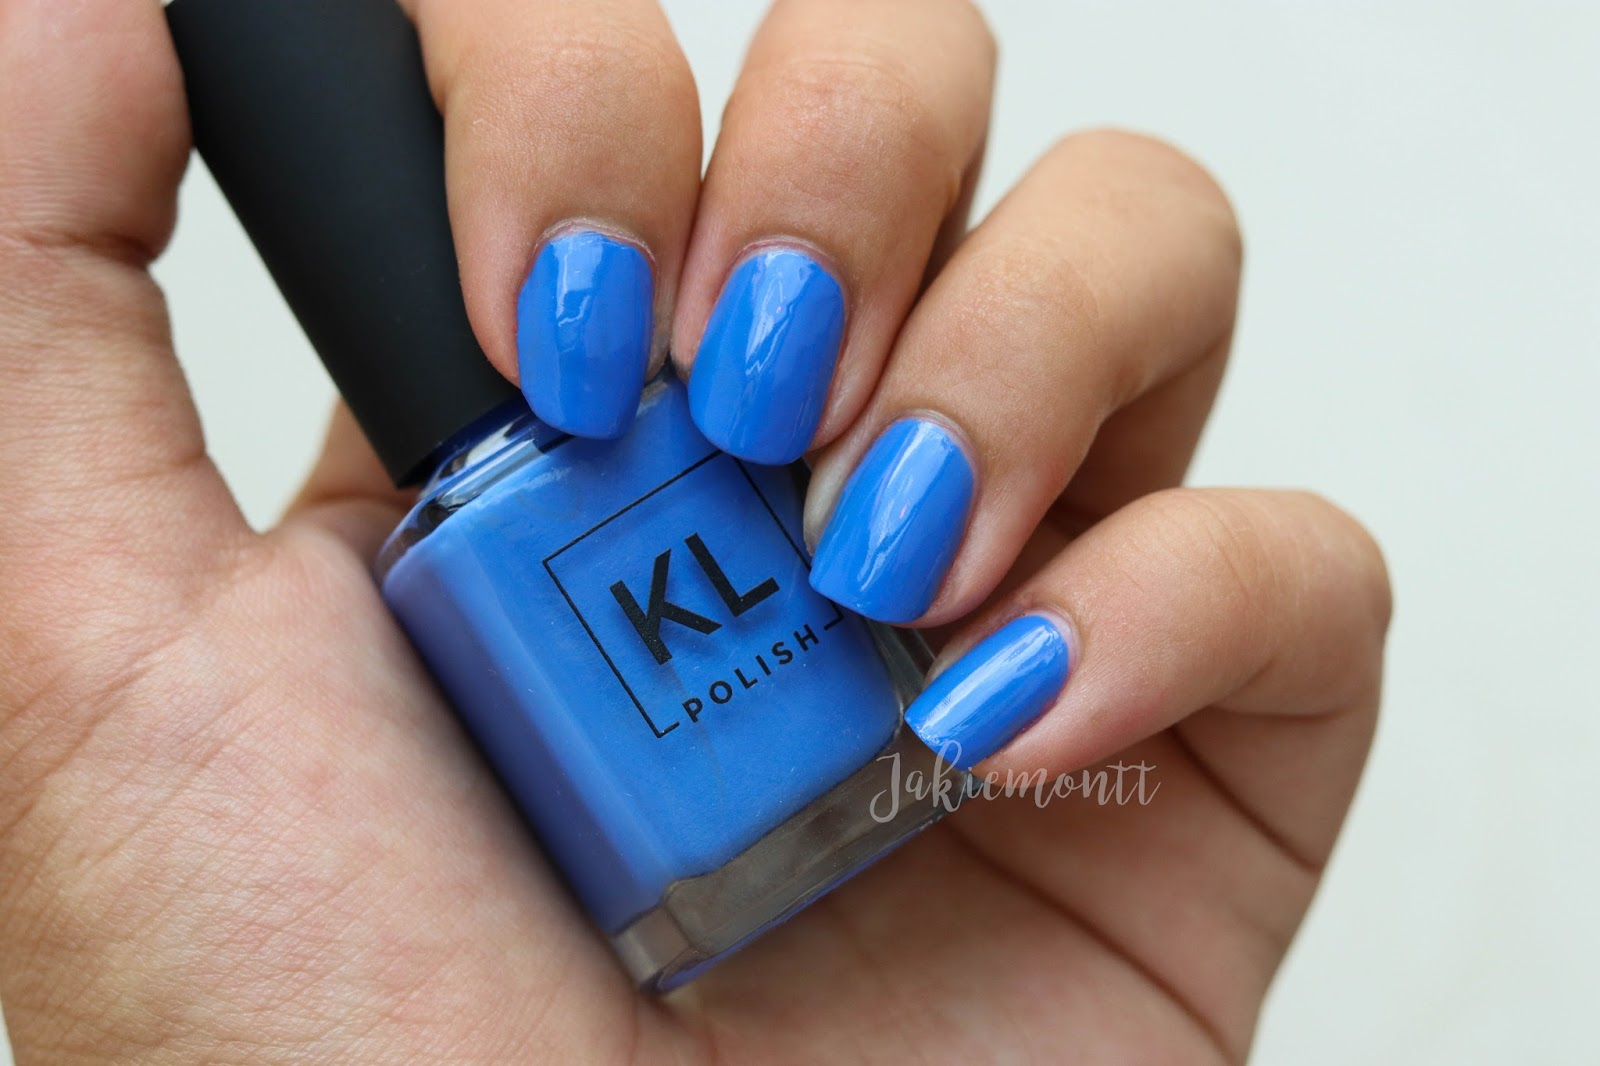 KL Polish | Miami Collection Review - JACKIEMONTT